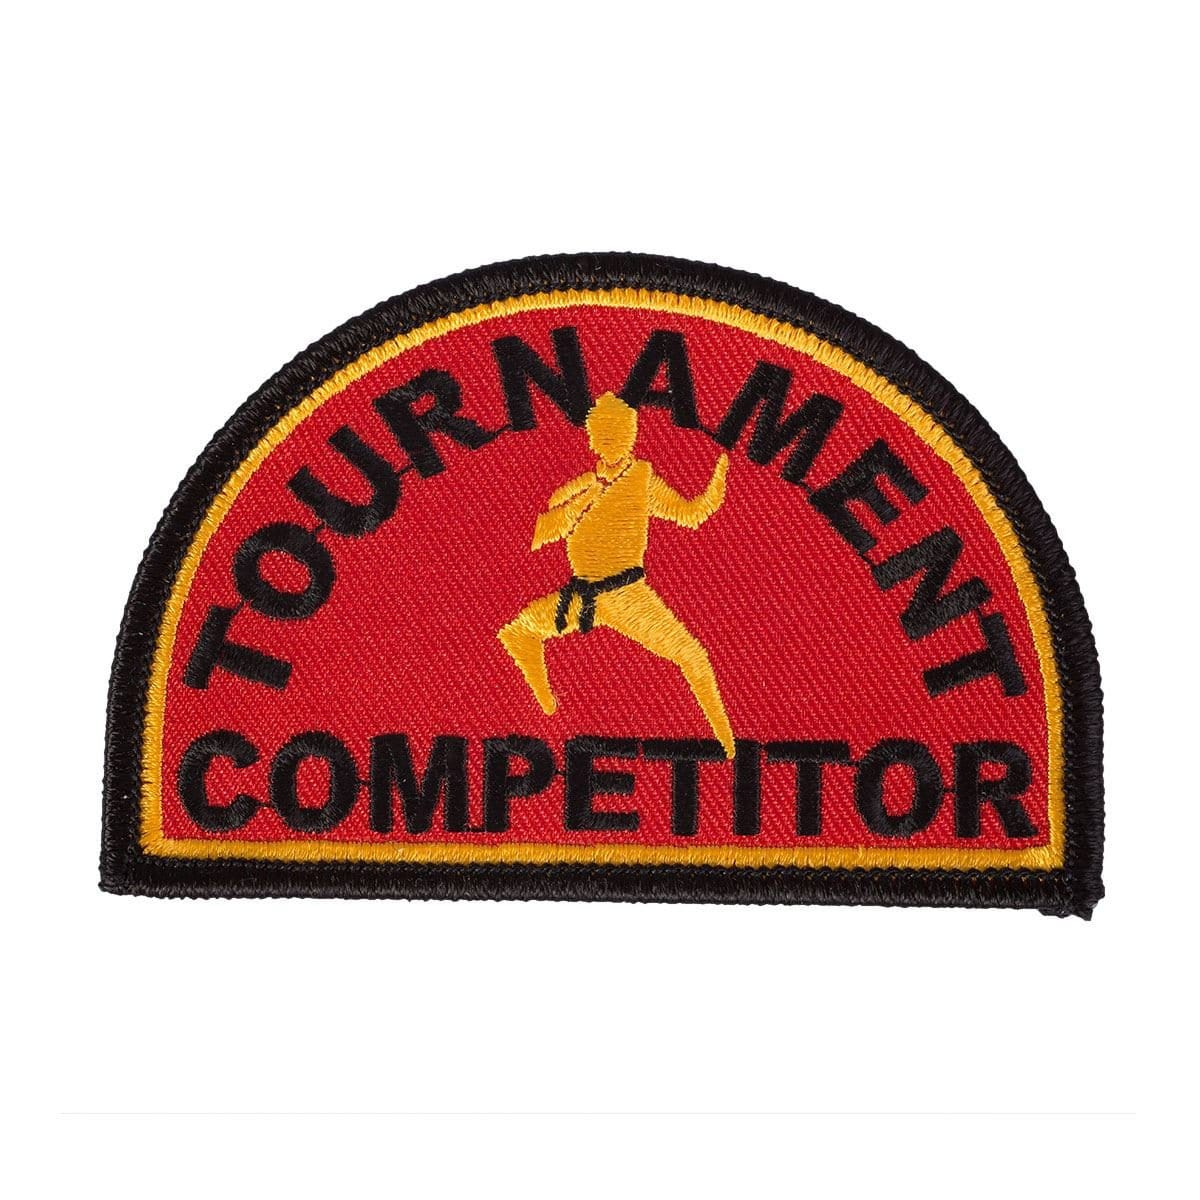 Tournament Competitor Patch c0837 - BlackBeltShop